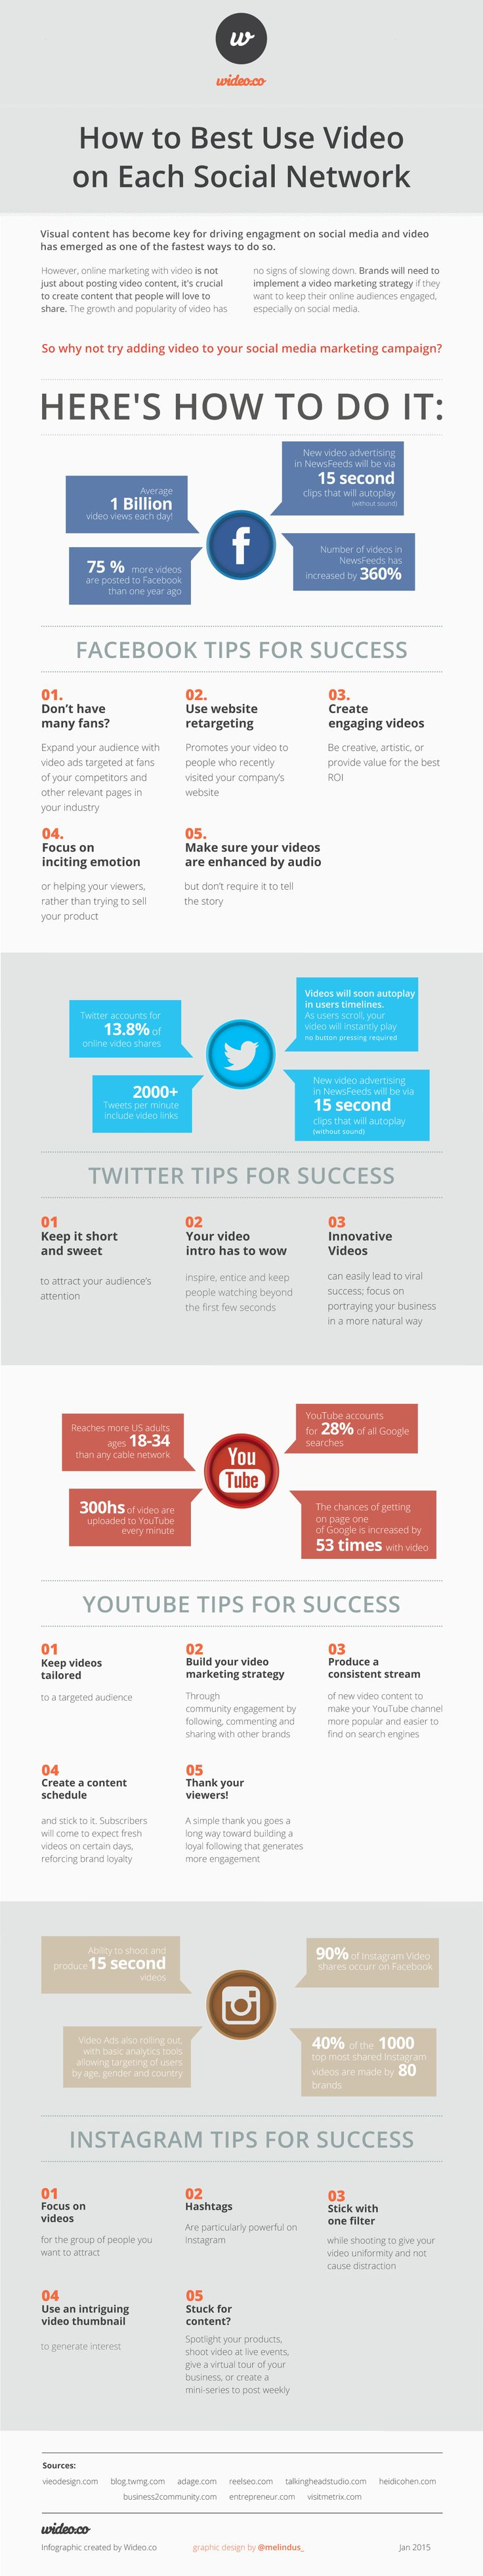 Facebook, Twitter, YouTube, Instagram: How To Best Use Video On Each Social Network - #Infographic